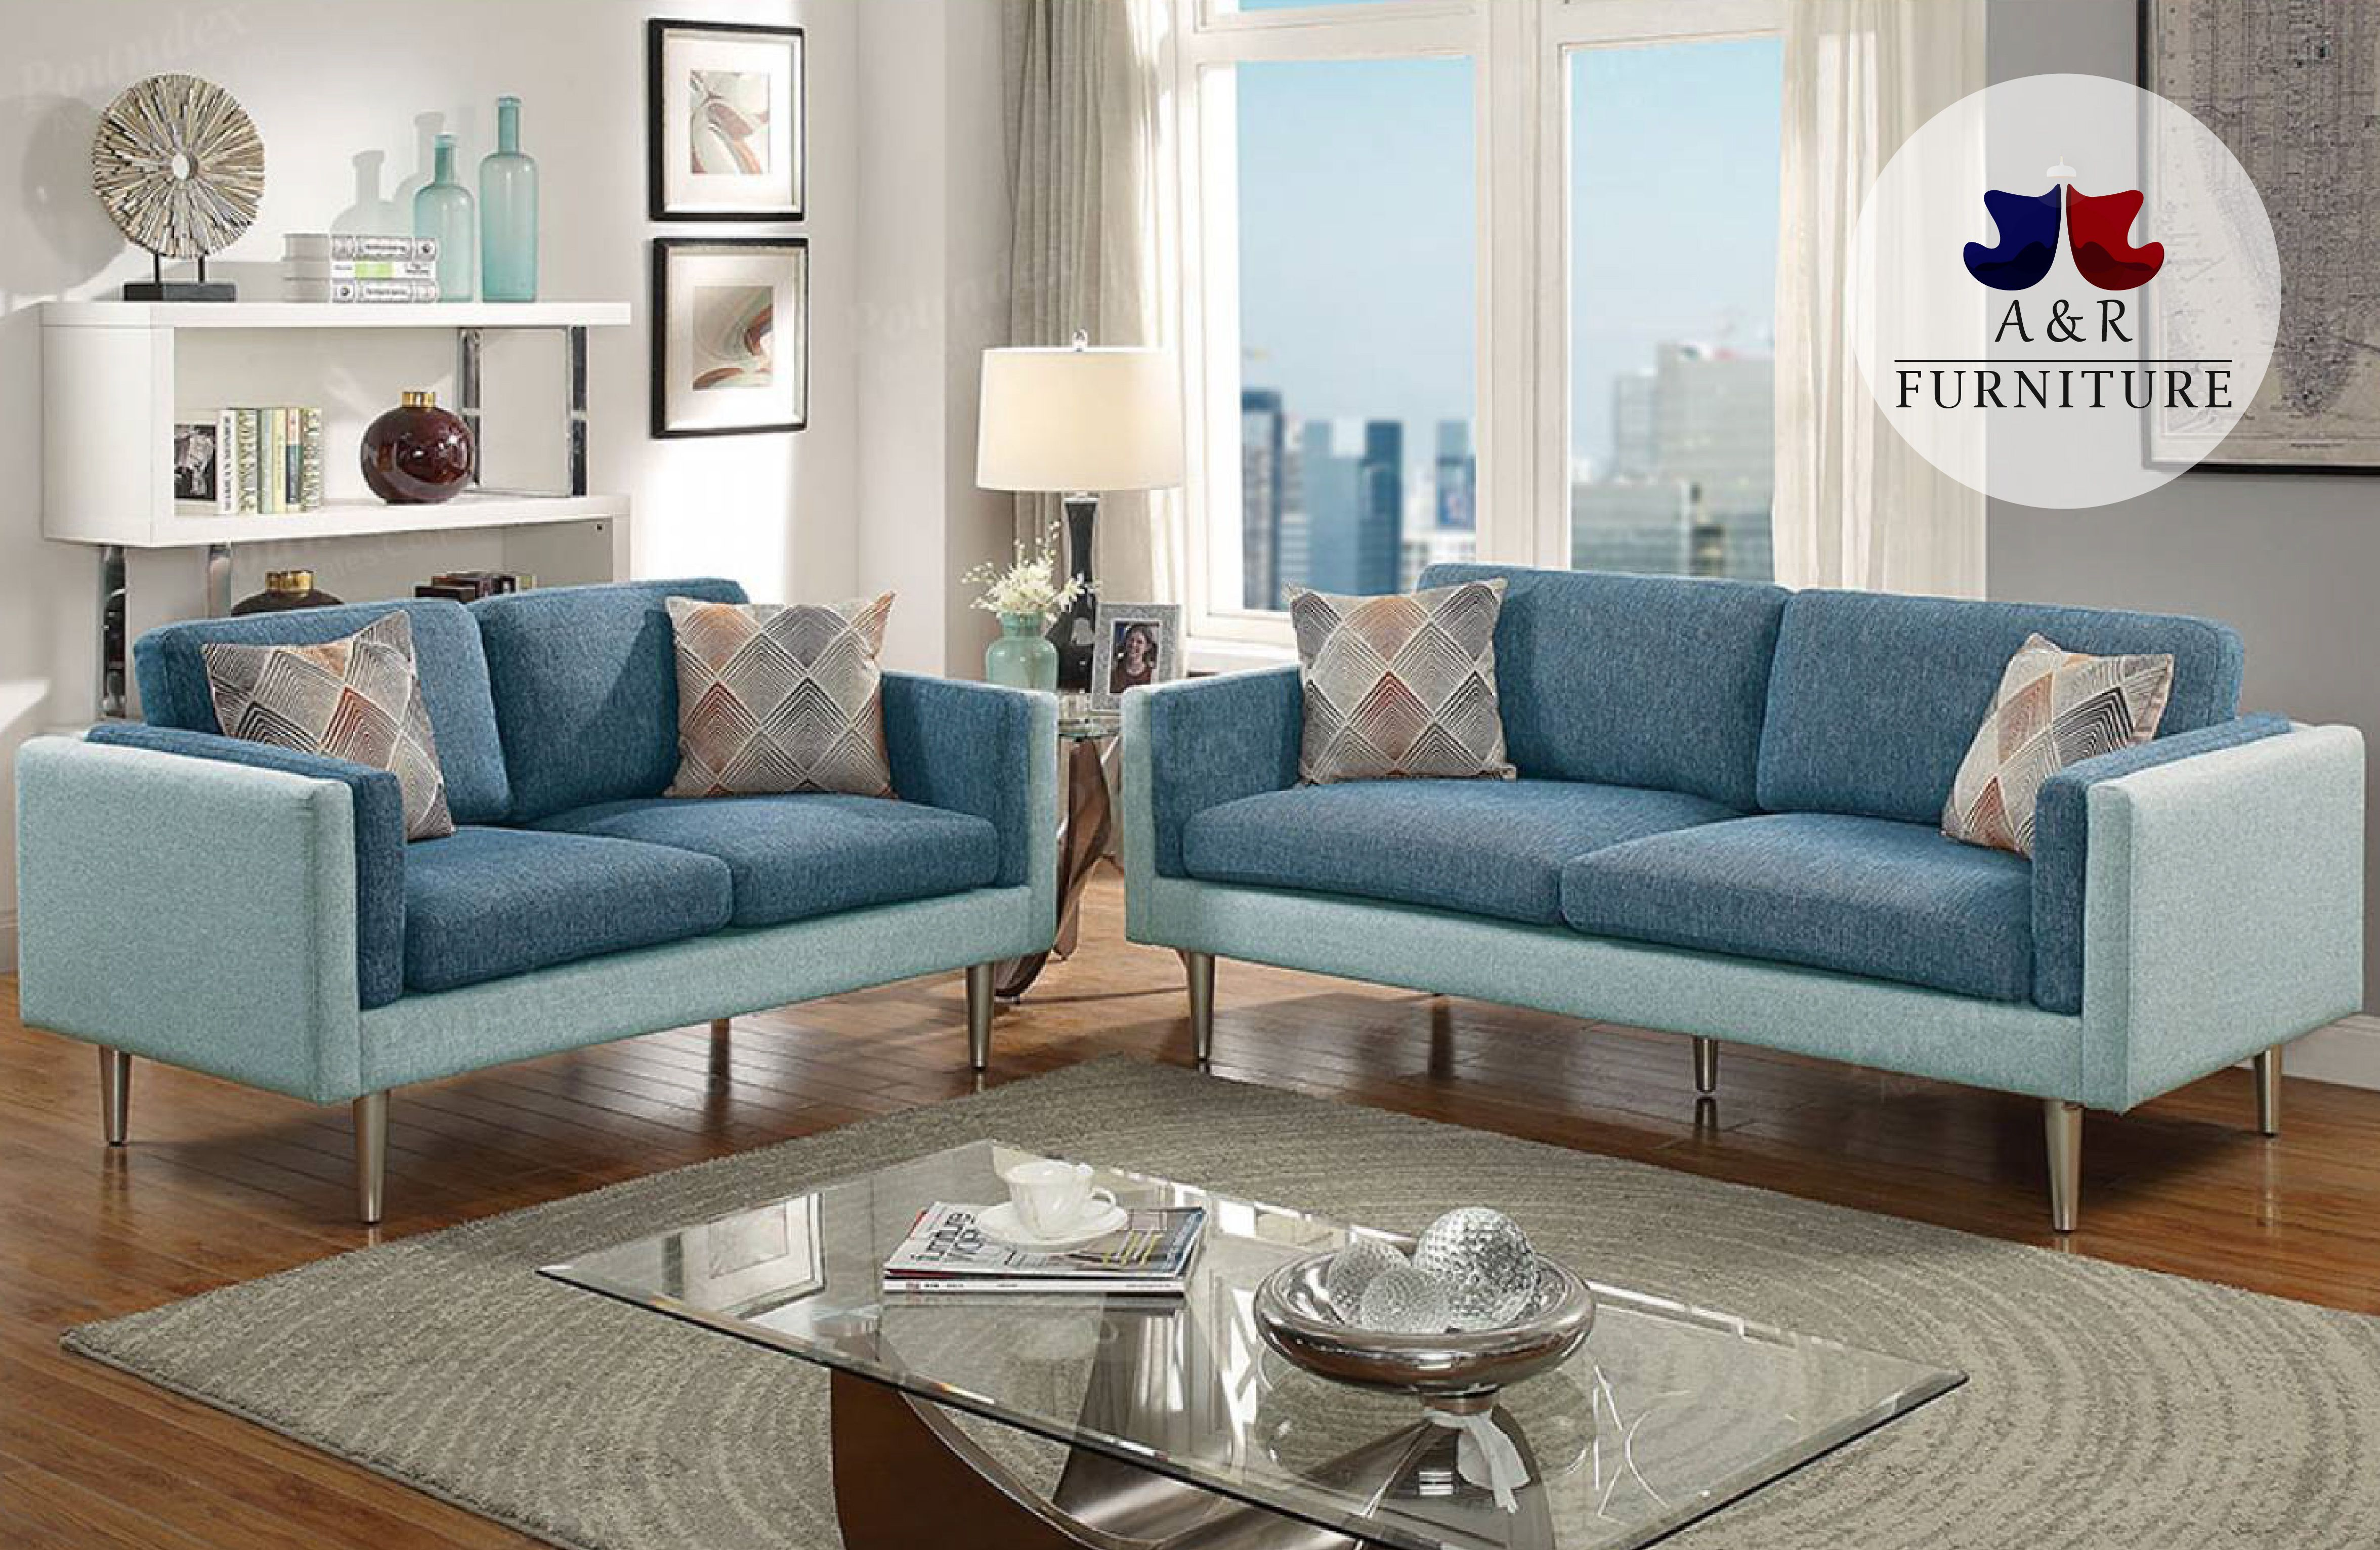 2 Pcs Blue Sofa Set Ly From Your Phone And Get Roved In Minutes No Credit